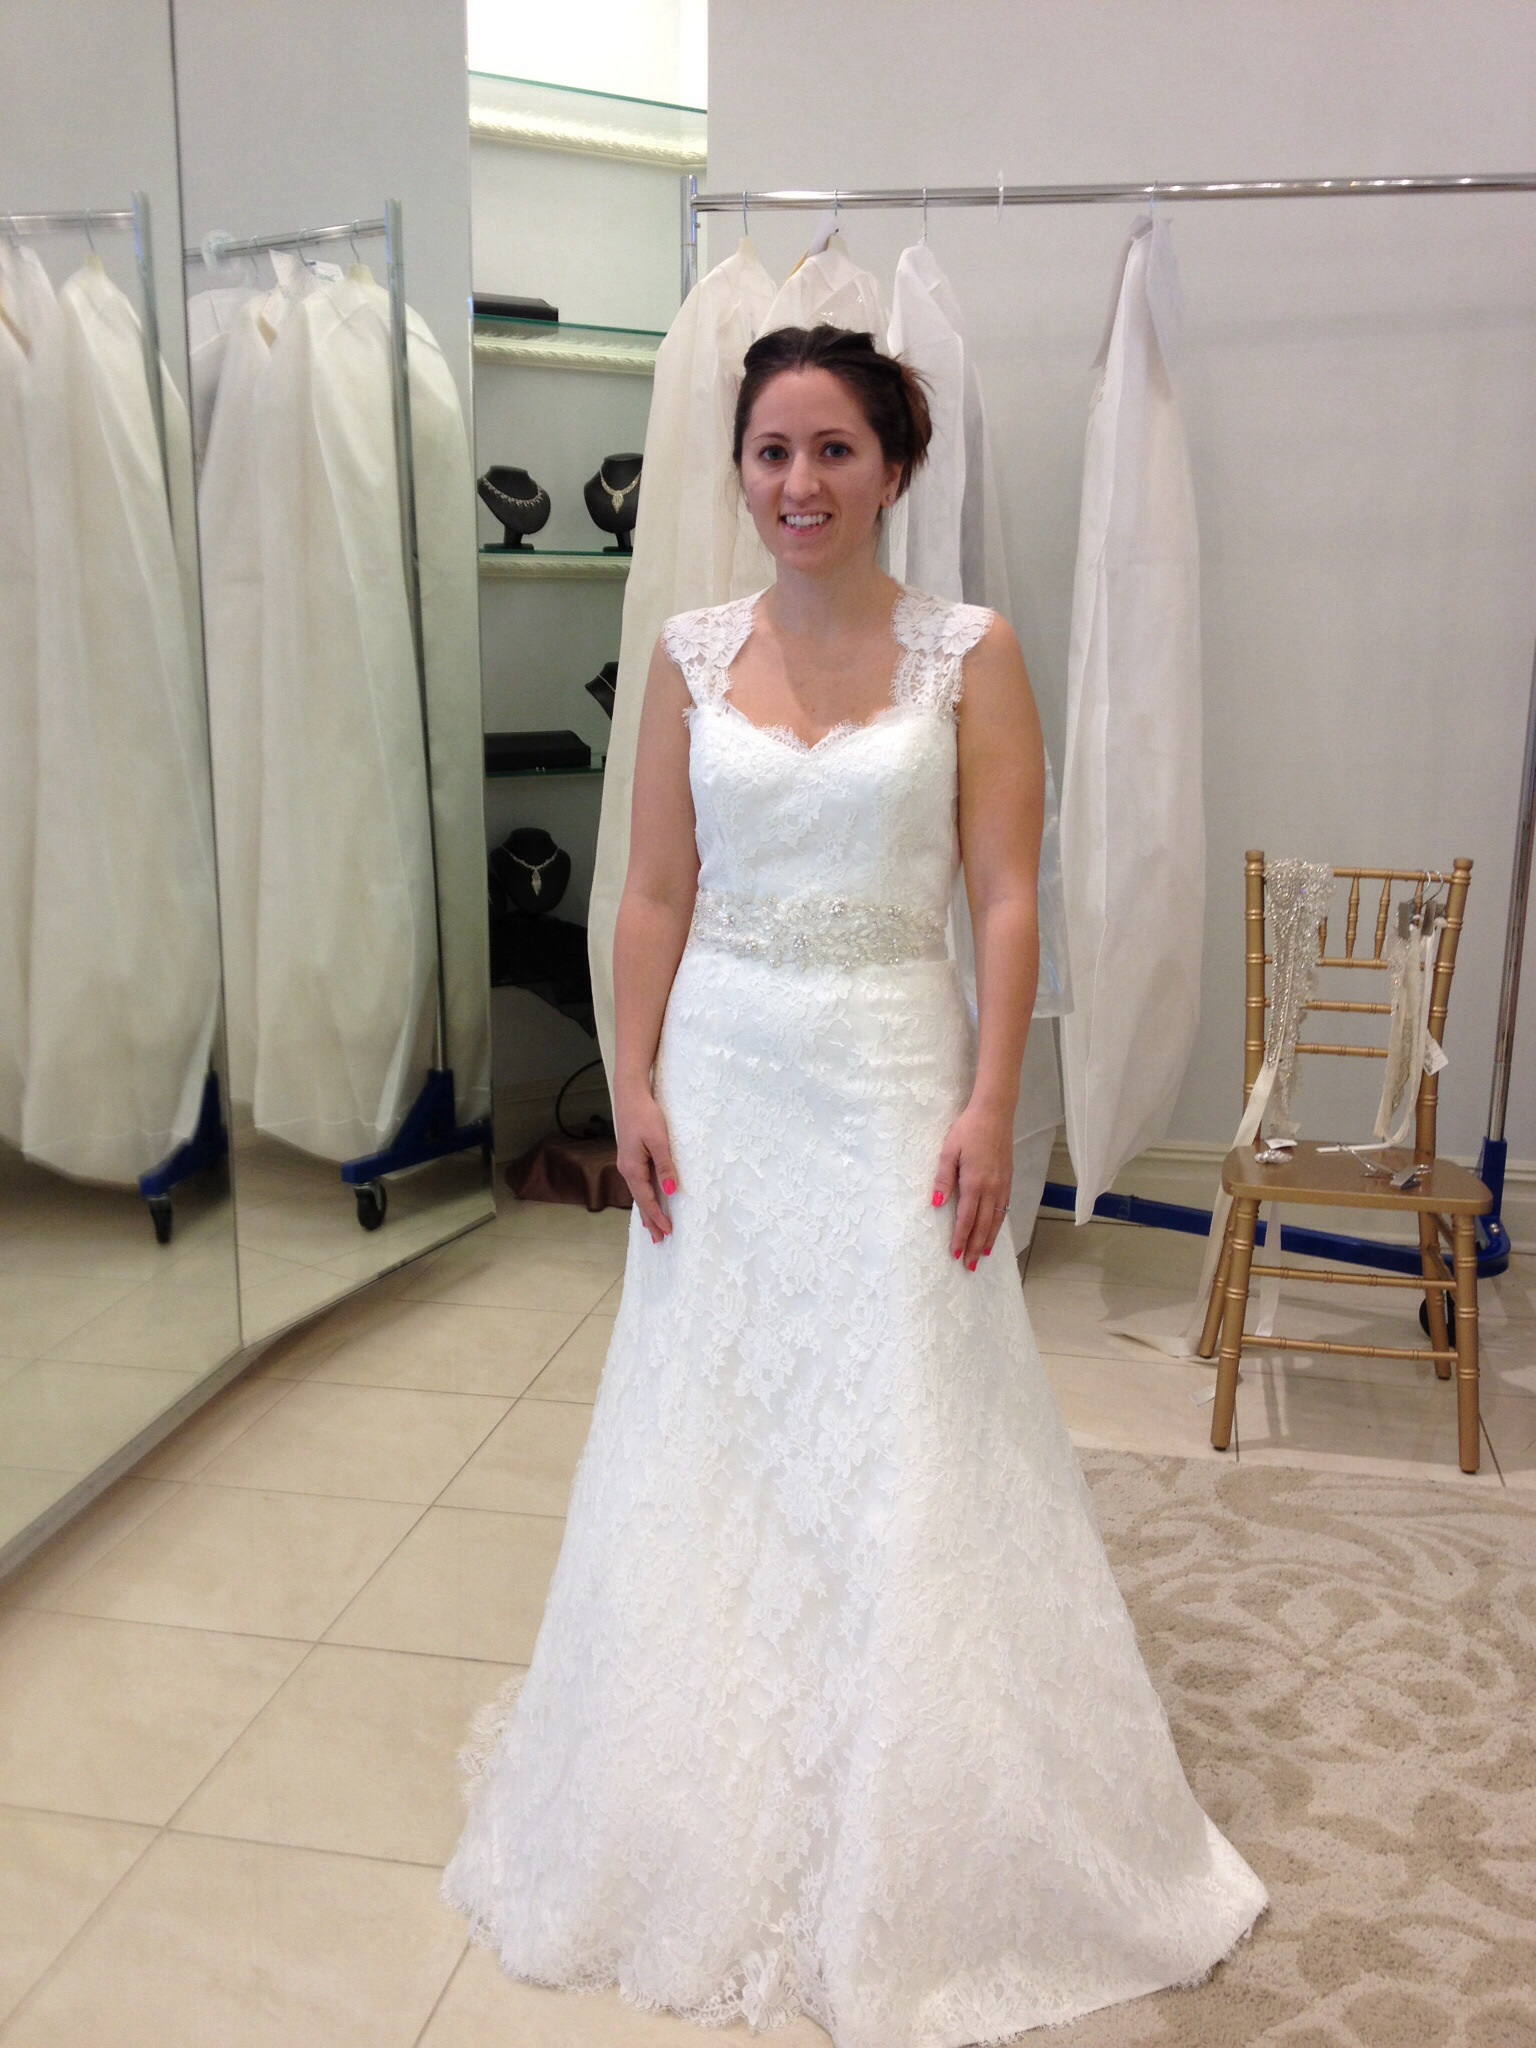 paloma blanca lace a line wedding dress with keyhole back keyhole back wedding dress Paloma Blanca Lace A Line wedding dress with Keyhole back Weddingbee Photo Gallery